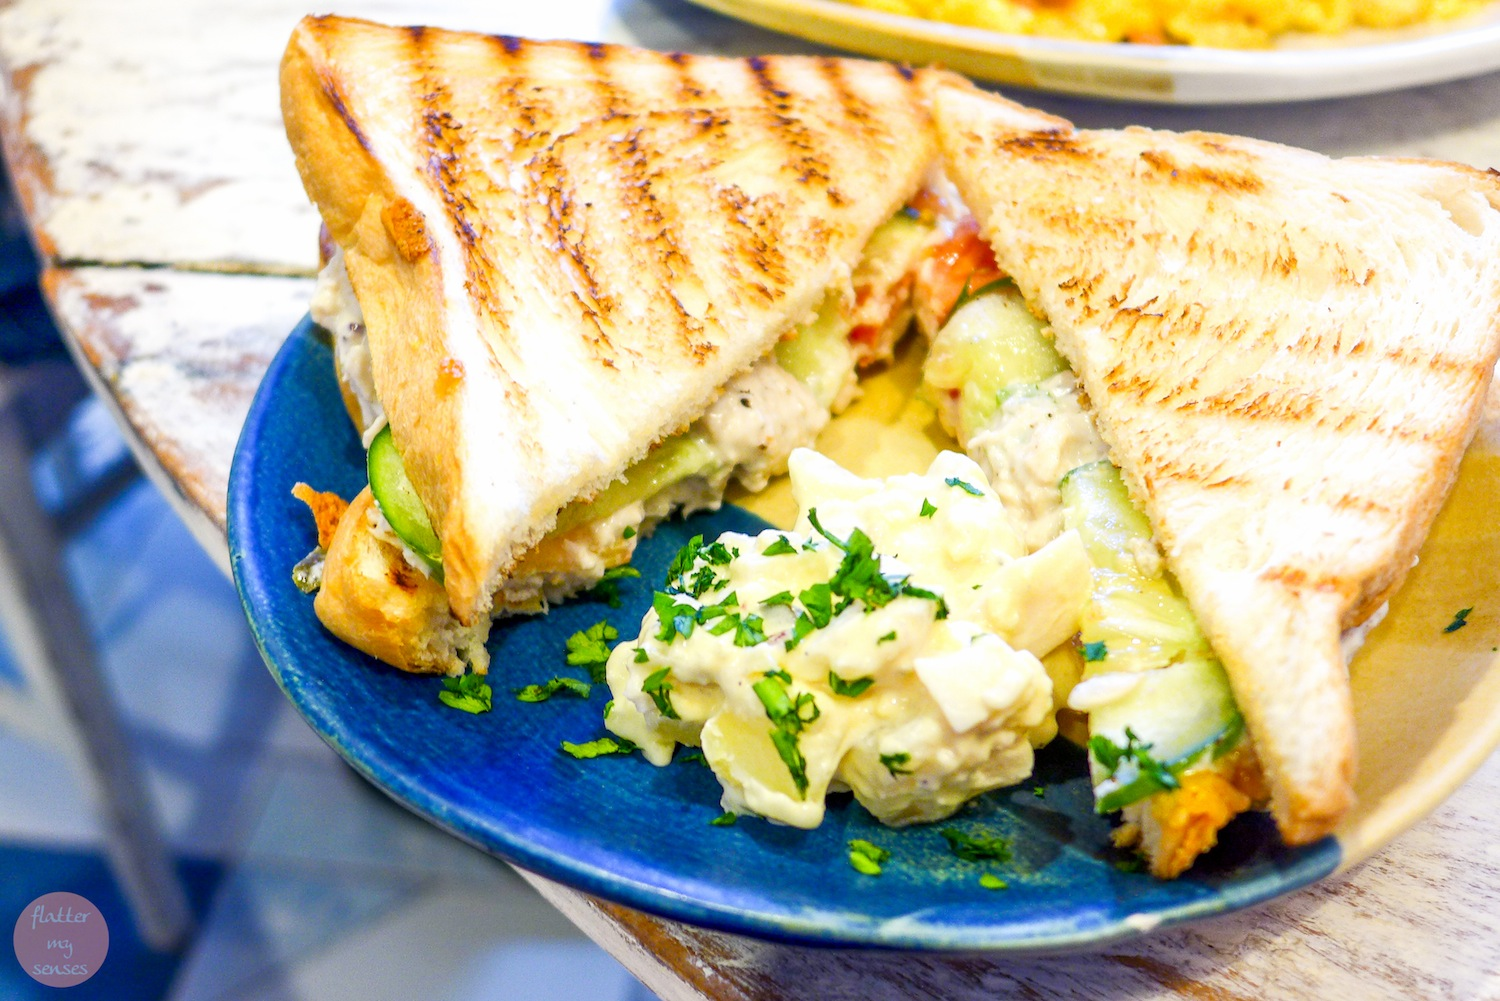 Chicken Salad Sandwich (Php 220)